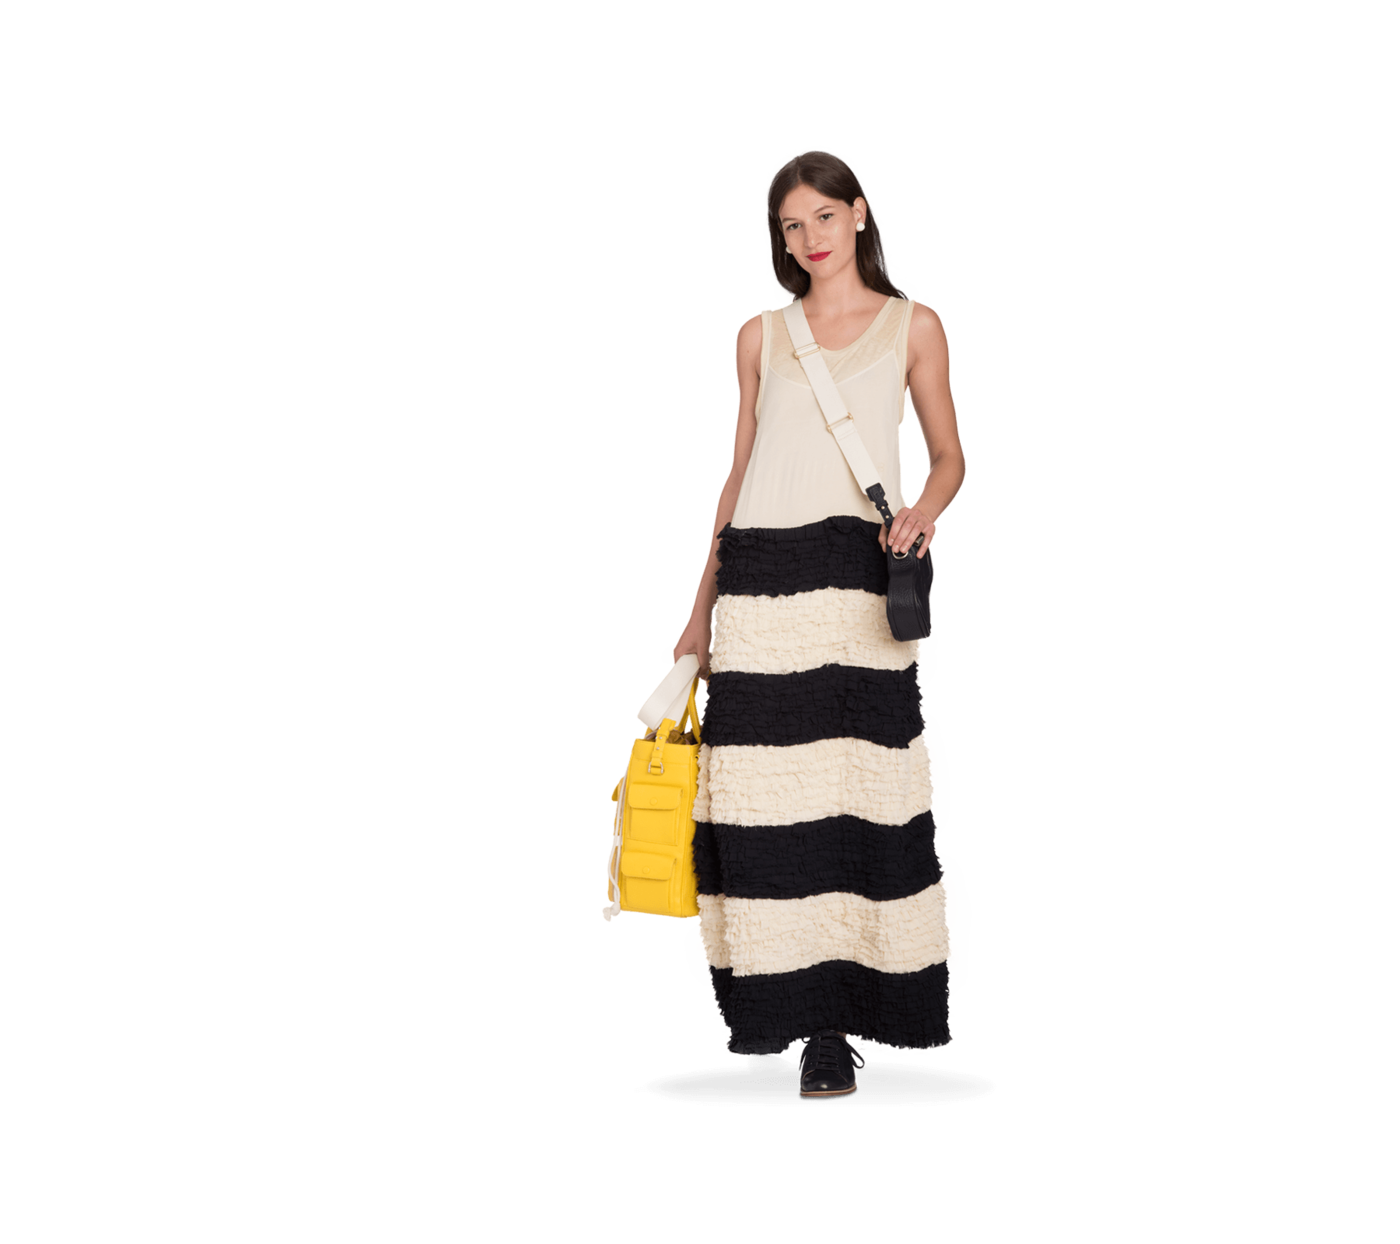 Bill Blass: the first American designer brand, est. 1970.  Piper Long Slipdress $1,188.00 Raw-edge ruffles give a tough dose of fluff to the classic slip dress Slip-simple style, but throws down like a gown Wear it to a party, dancing, or leave it on the beach Colors: Lemon, Navy/Wood Ash 100% Viscose